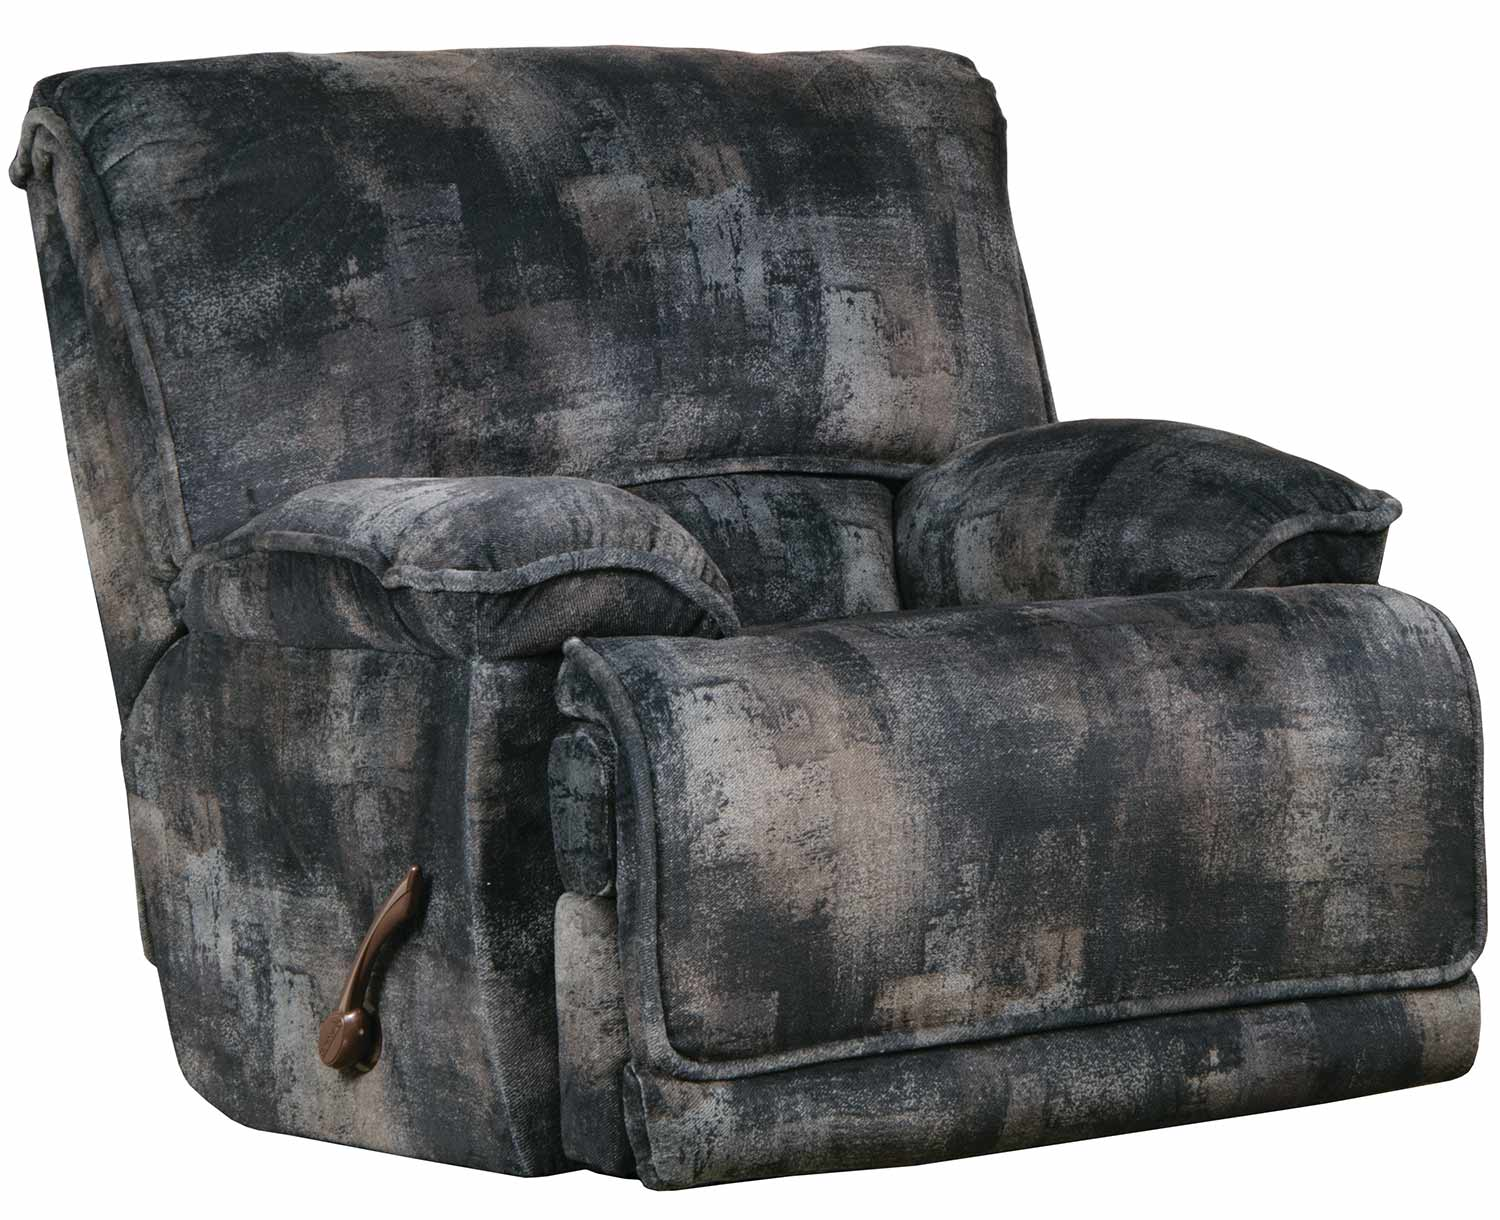 CatNapper Bolt Recliner Chair - Pewter